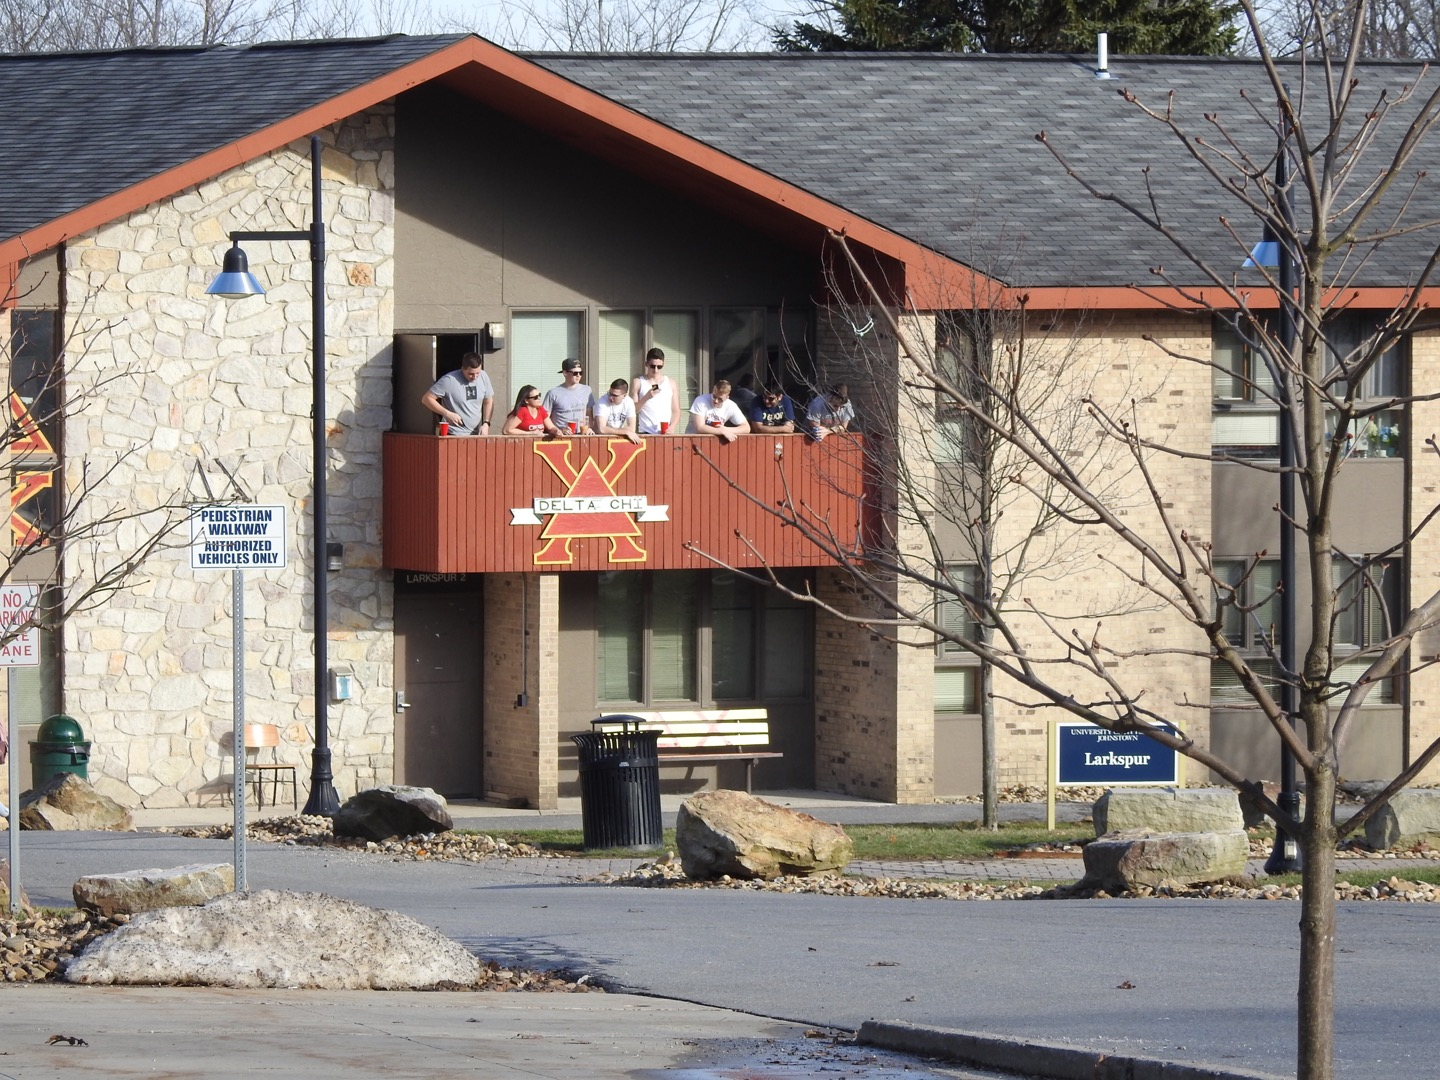 Students gather Feb. 20 at Delta Chi's Larkspur Lodge balcony. Students can now place a bid with a Greek organization after participating in a workshop.